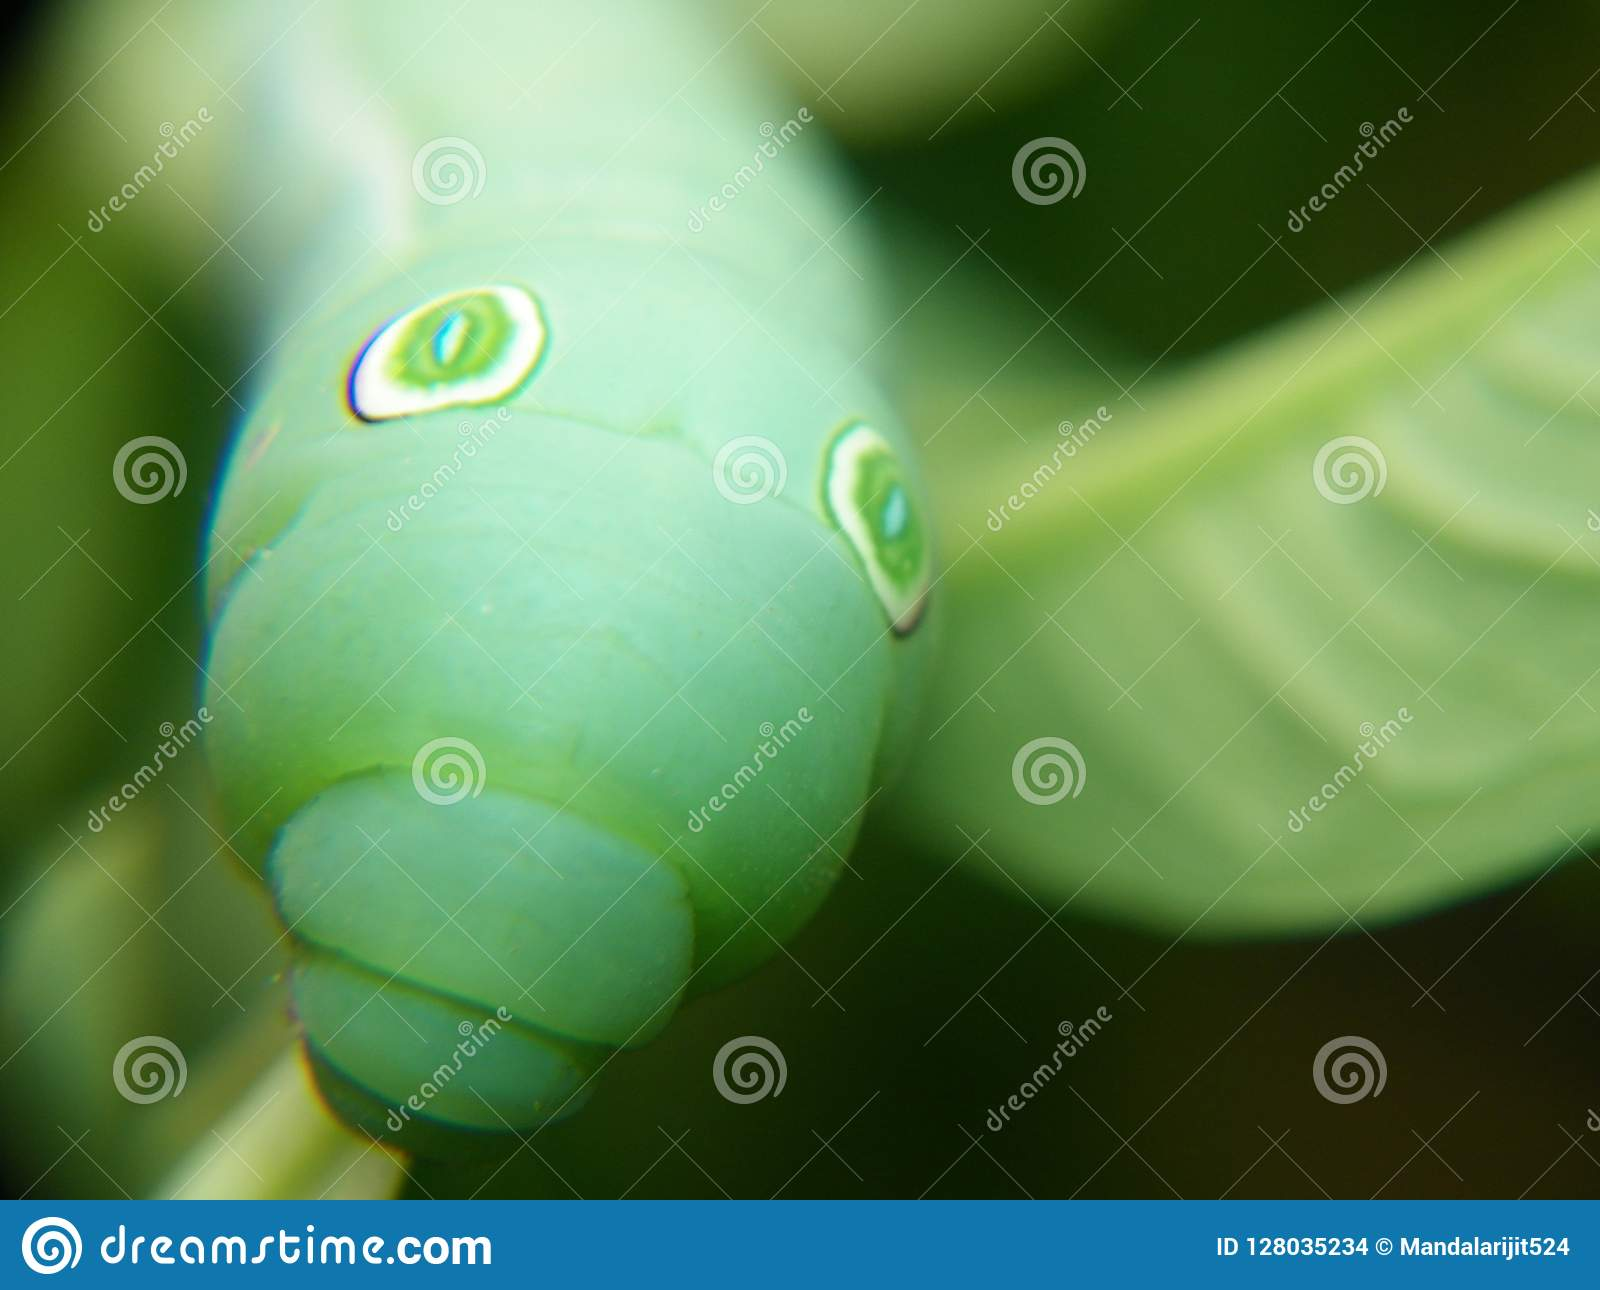 This is a macro of a little green insect